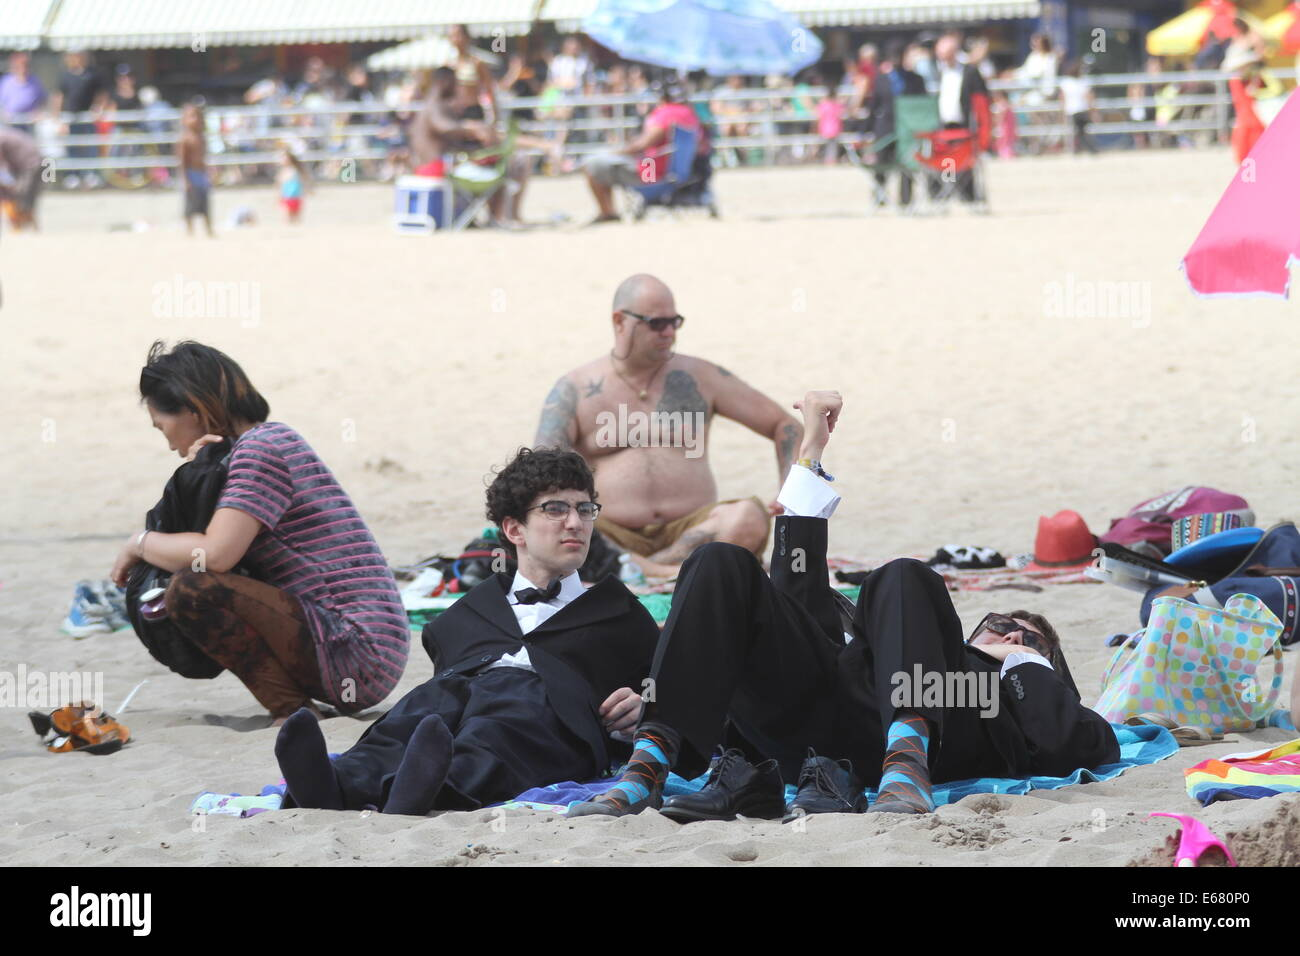 New York, New York, USA. 17th Aug, 2014. Coney Island Brooklyn - The Group who puts on No Pants Subway Ride .(improveverywhere) - Stock Image